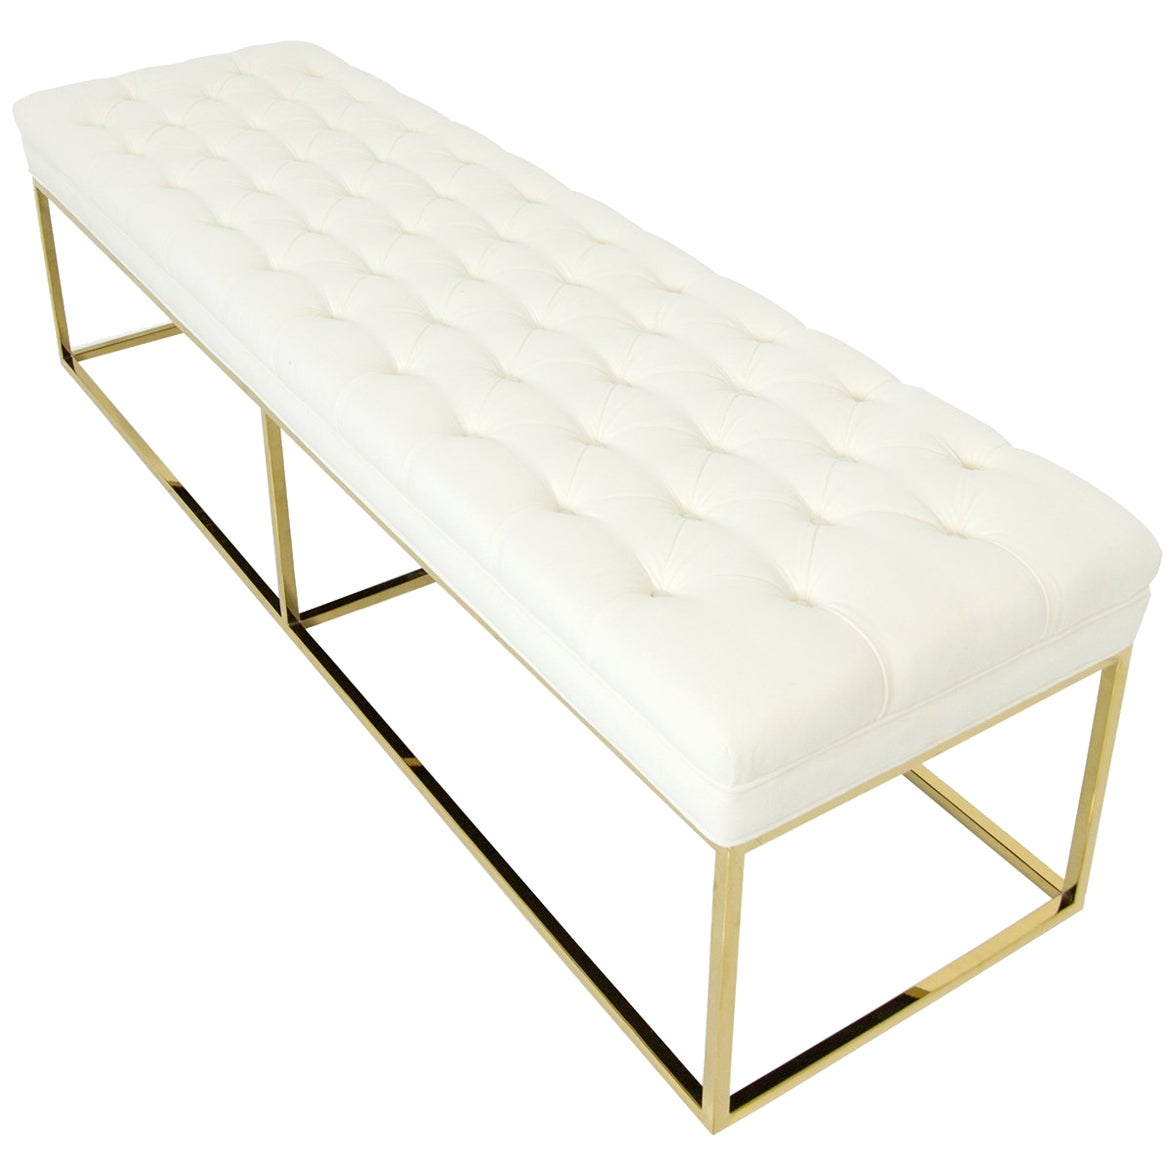 Modern Style Velvet Tufted Ottoman Bench with Polished Brass Geometric Frames